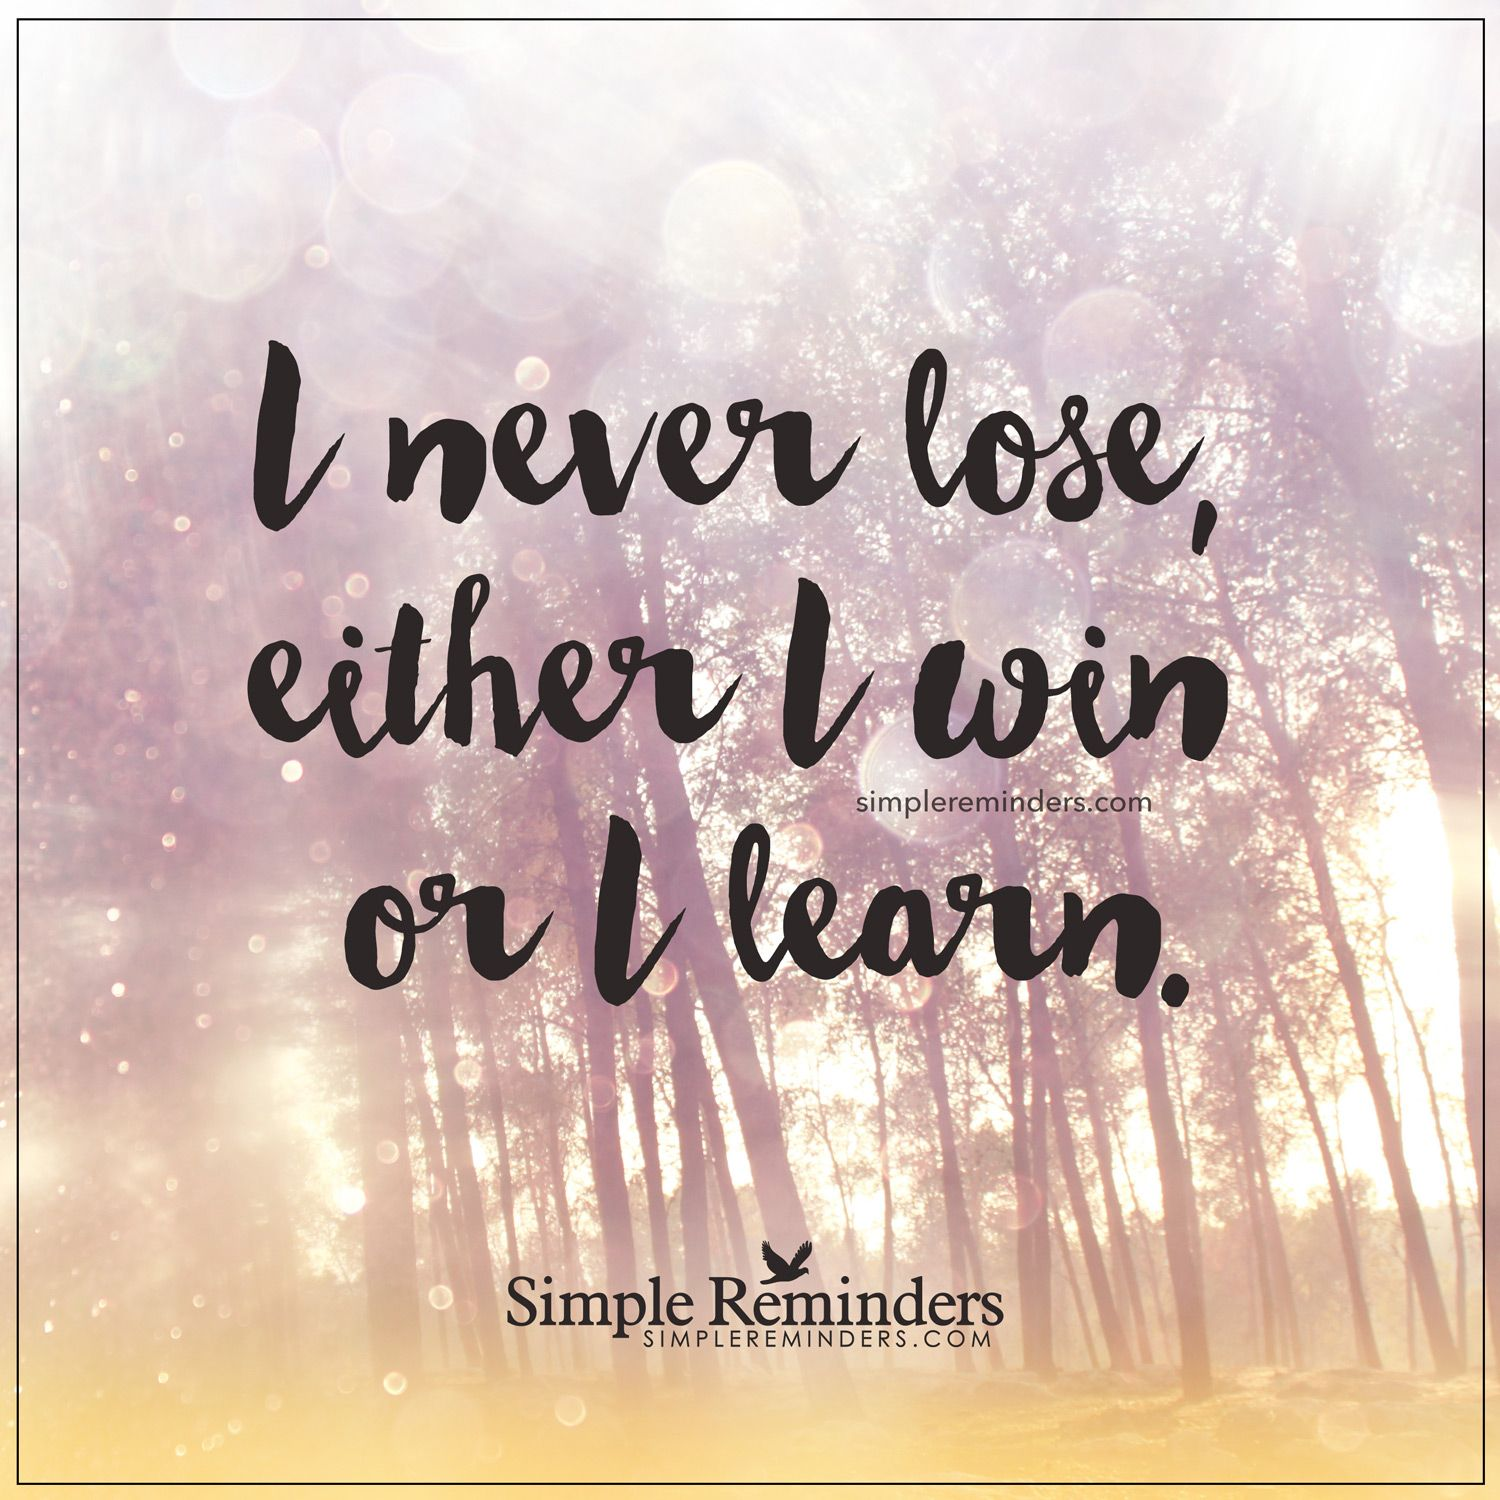 Win Or Lose Quotes Either I Win Or I Learn I Never Lose Either I Win Or I Learn